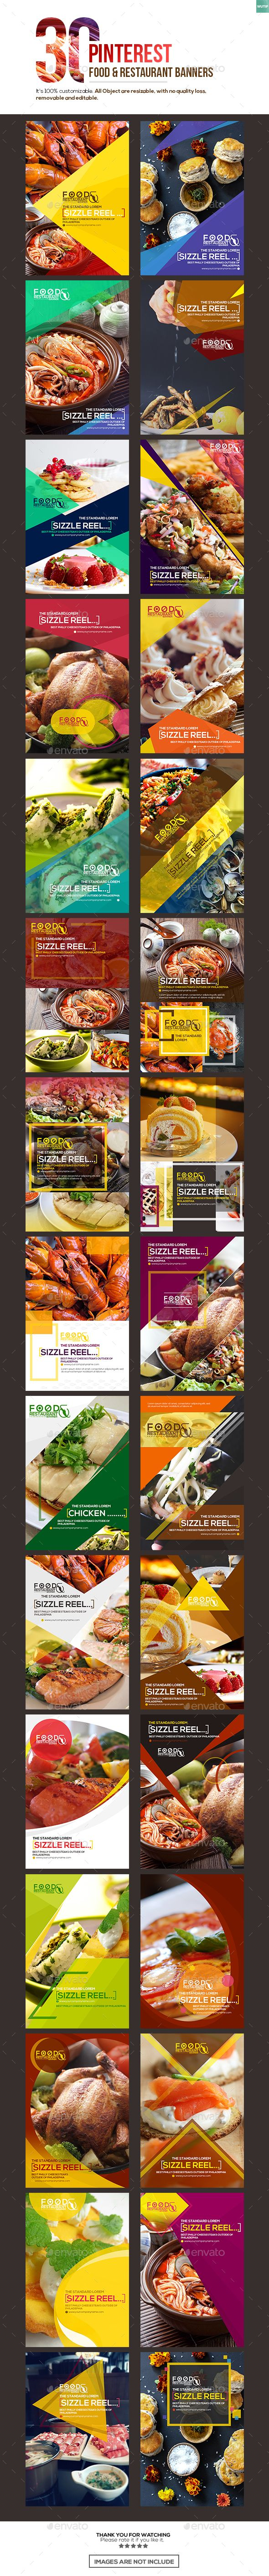 30 Pinterest Food & Restaurant Banners Templates PSD #ad #promotion